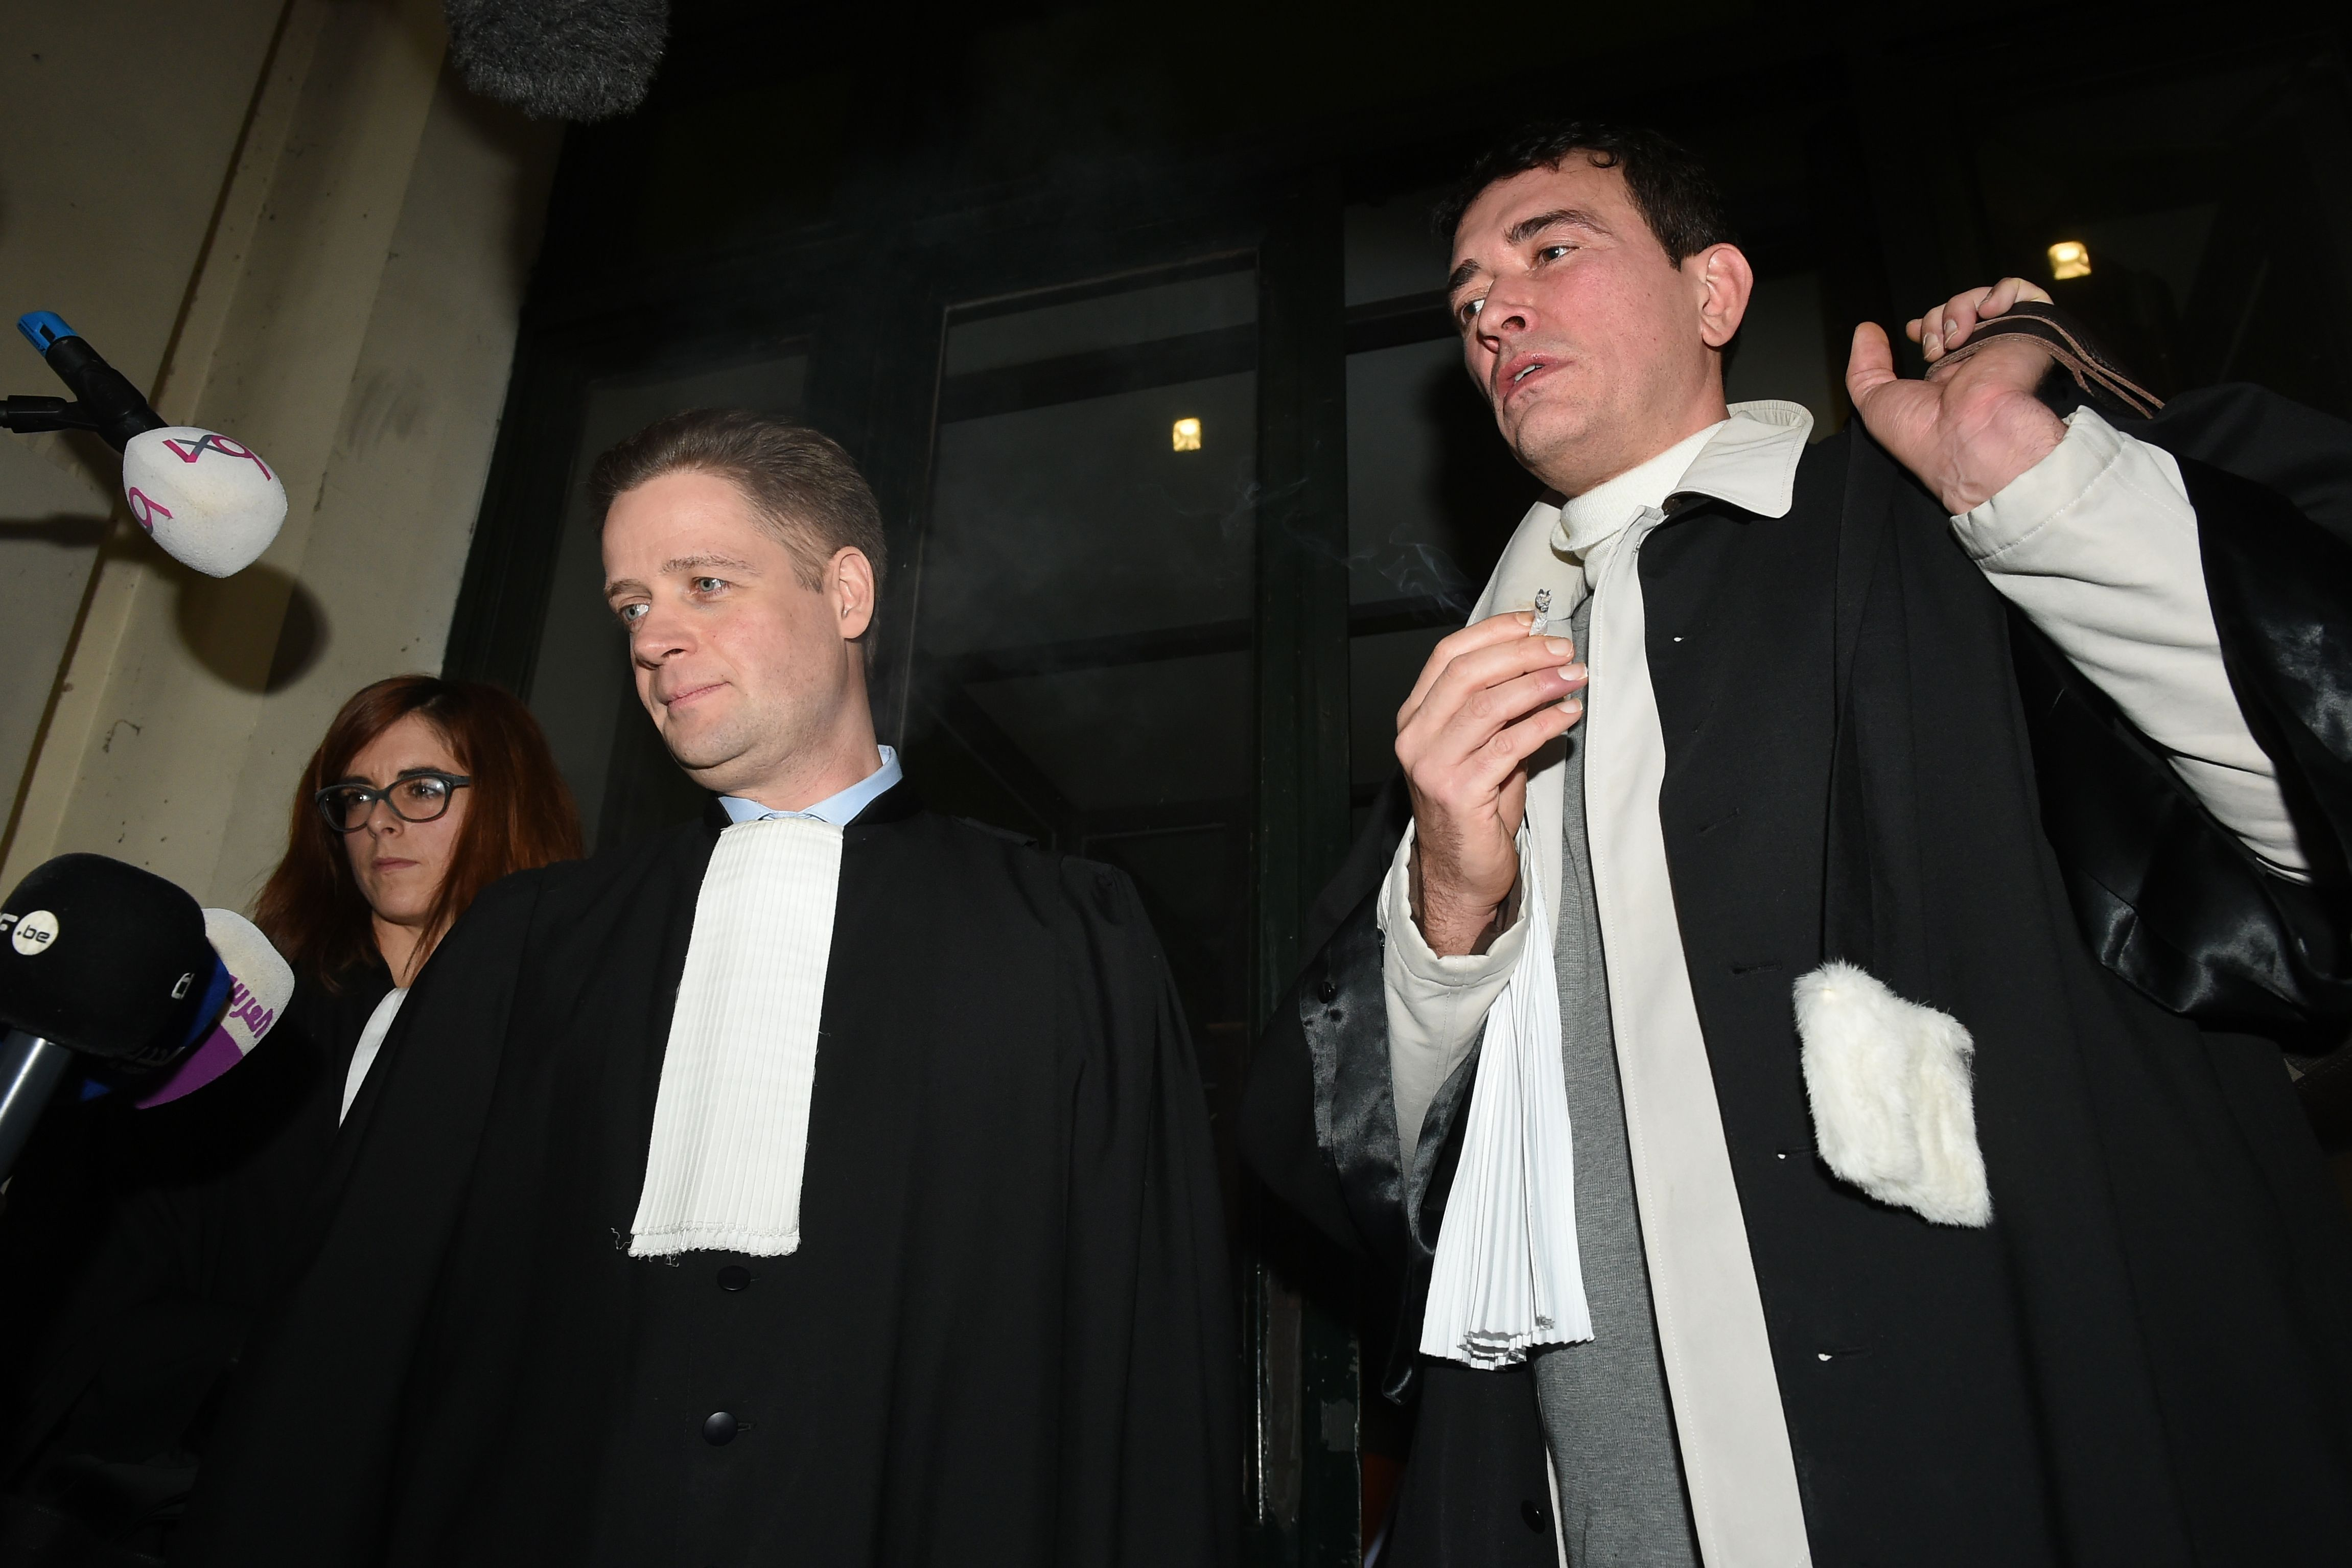 Belgian lawyers of Mehdi Nemmouche, the French suspect in Brussels Jewish museum attack, Henri Laquay (L) and Sebastien Courtoy answer to journalists as they leave the courthouse in Brussels on December 20, 2018 after a preliminary hearing designed to finalise a list of 150 to 200 witnesses, ahead of his trial on charge of shooting four people dead at a Jewish museum after his return from Syria's battlefields. - Nemmouche, who allegedly became the first jihadist from Syria to stage a terror attack on European soil, will be tried next month along with co-defendant Nacer Bendrer. (JOHN THYS/AFP/Getty Images)